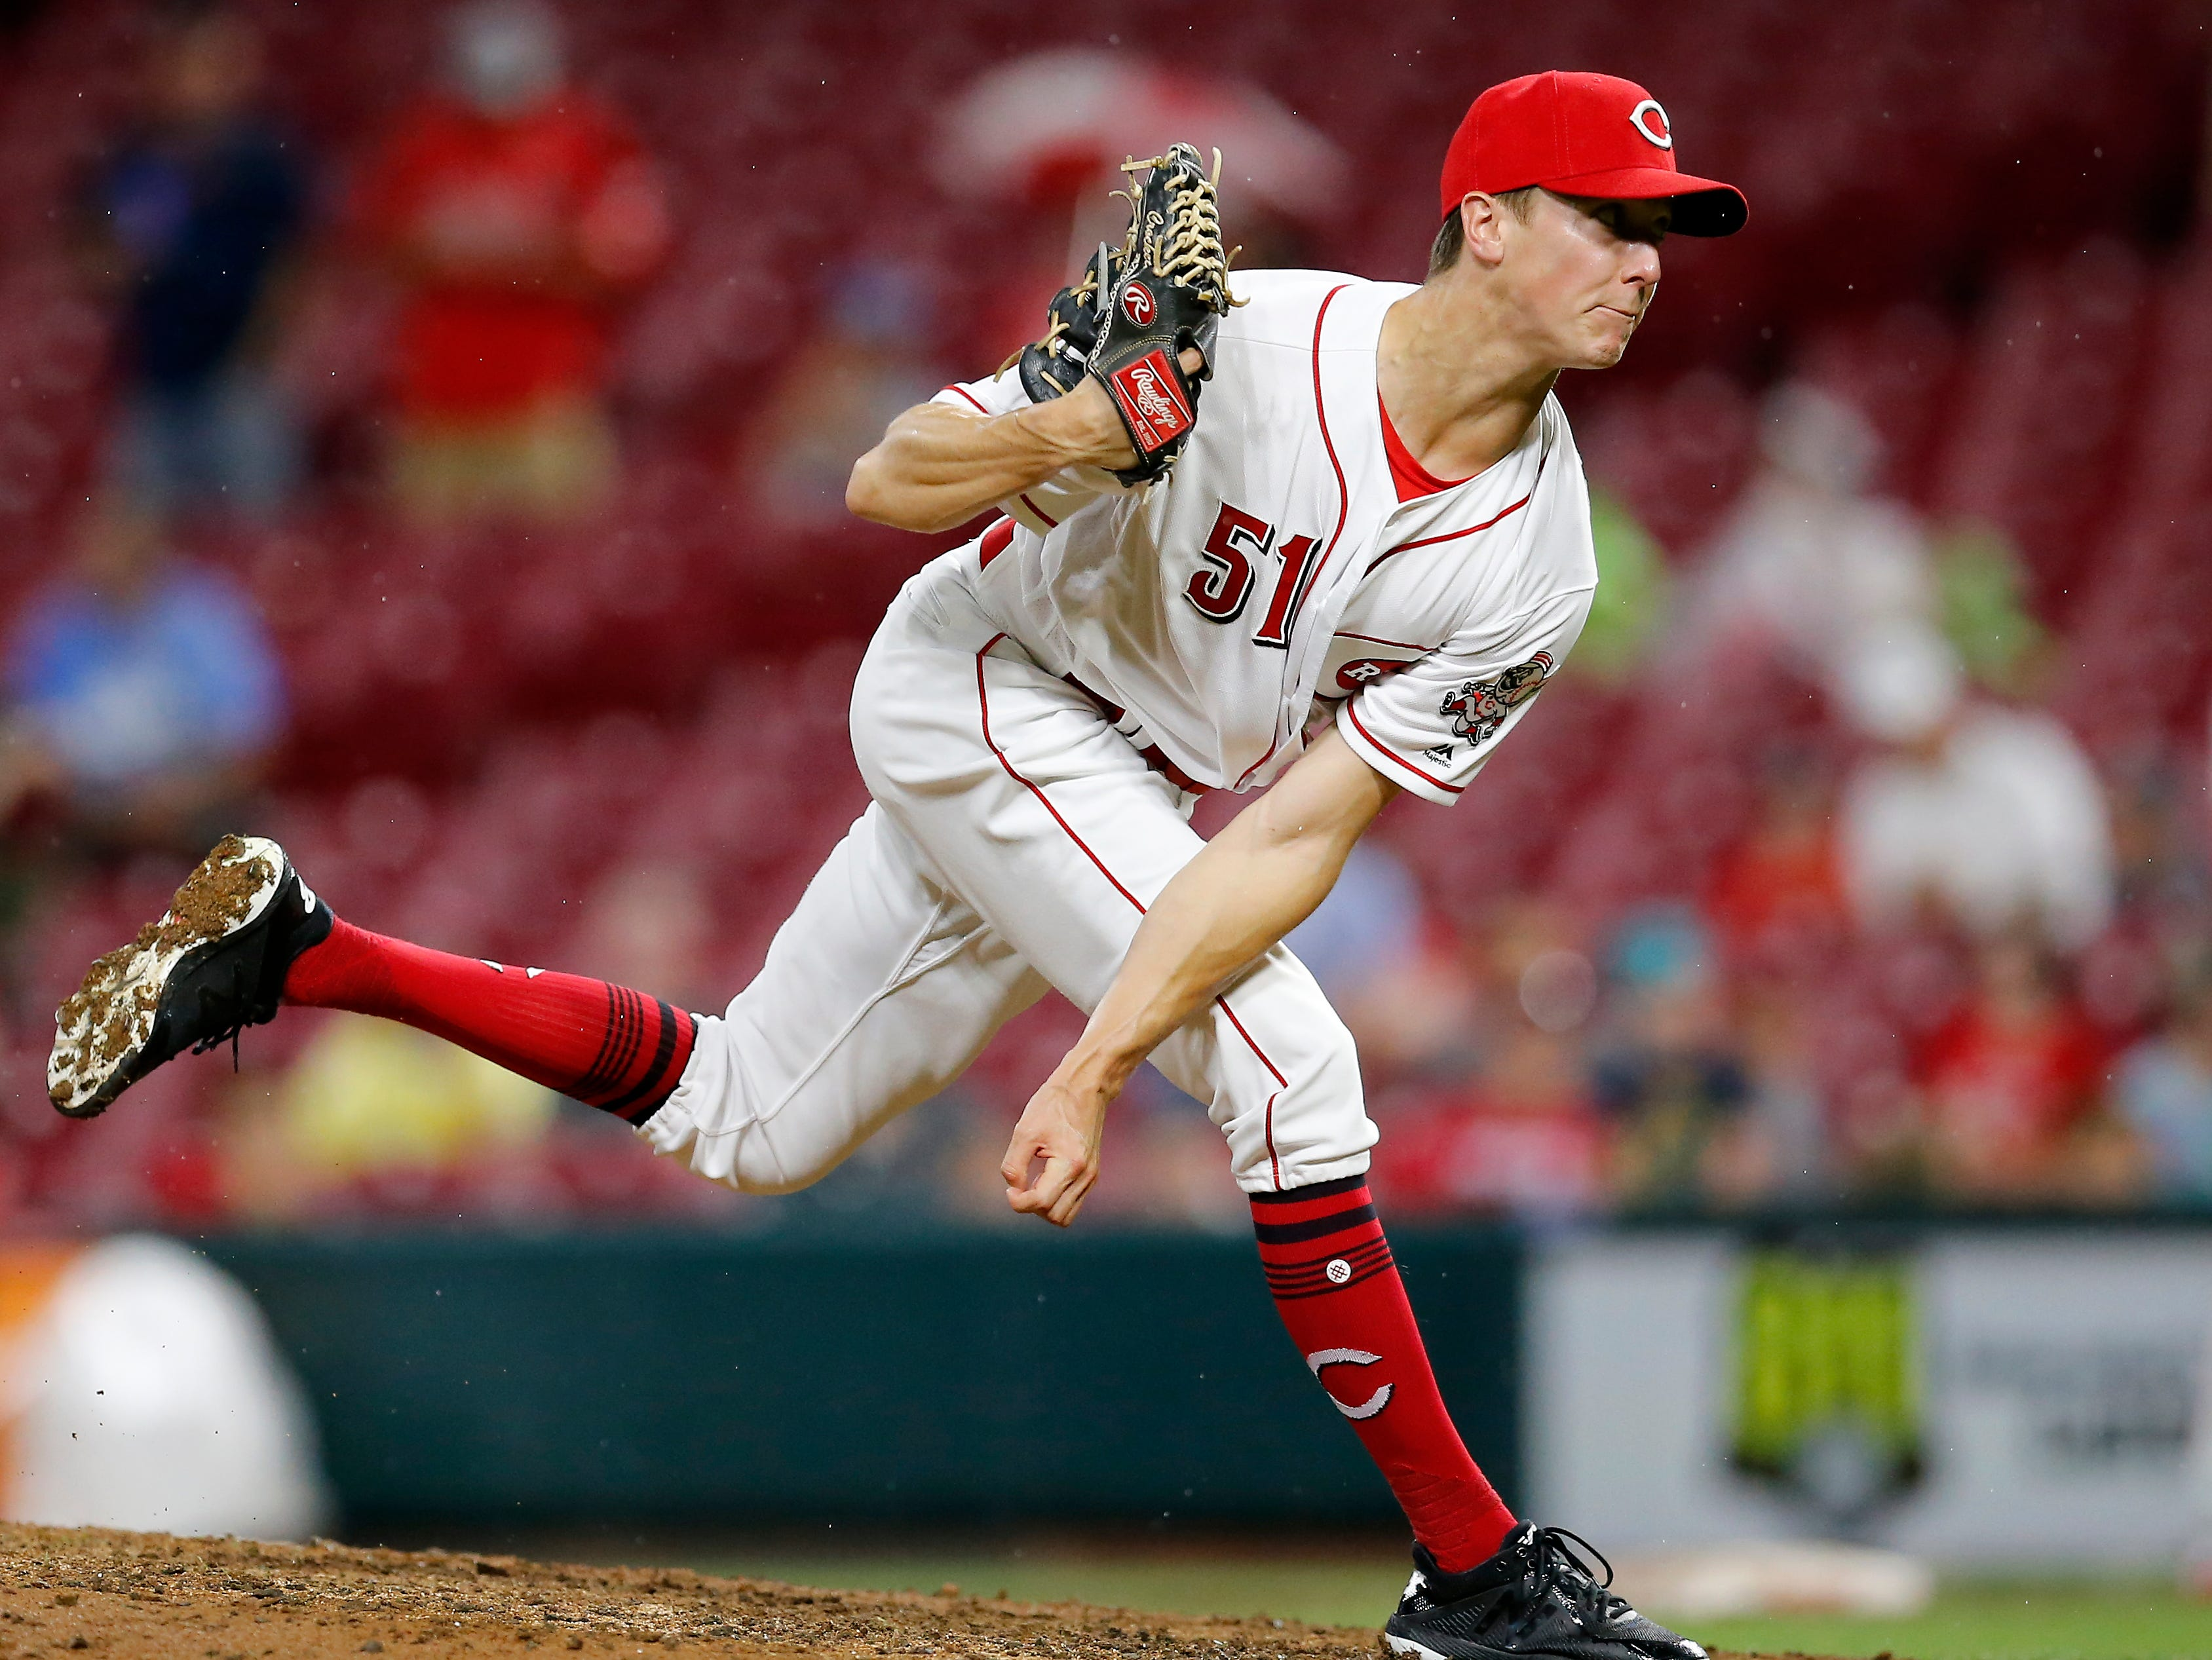 Cincinnati Reds relief pitcher Kyle Crockett (51) followers through on a pitch in the top of the eighth inning of the MLB National League game between the Cincinnati Reds and the Philadelphia Phillies at Great American Ball Park in downtown Cincinnati on Thursday, July 26, 2018. The Reds lost 9-4.